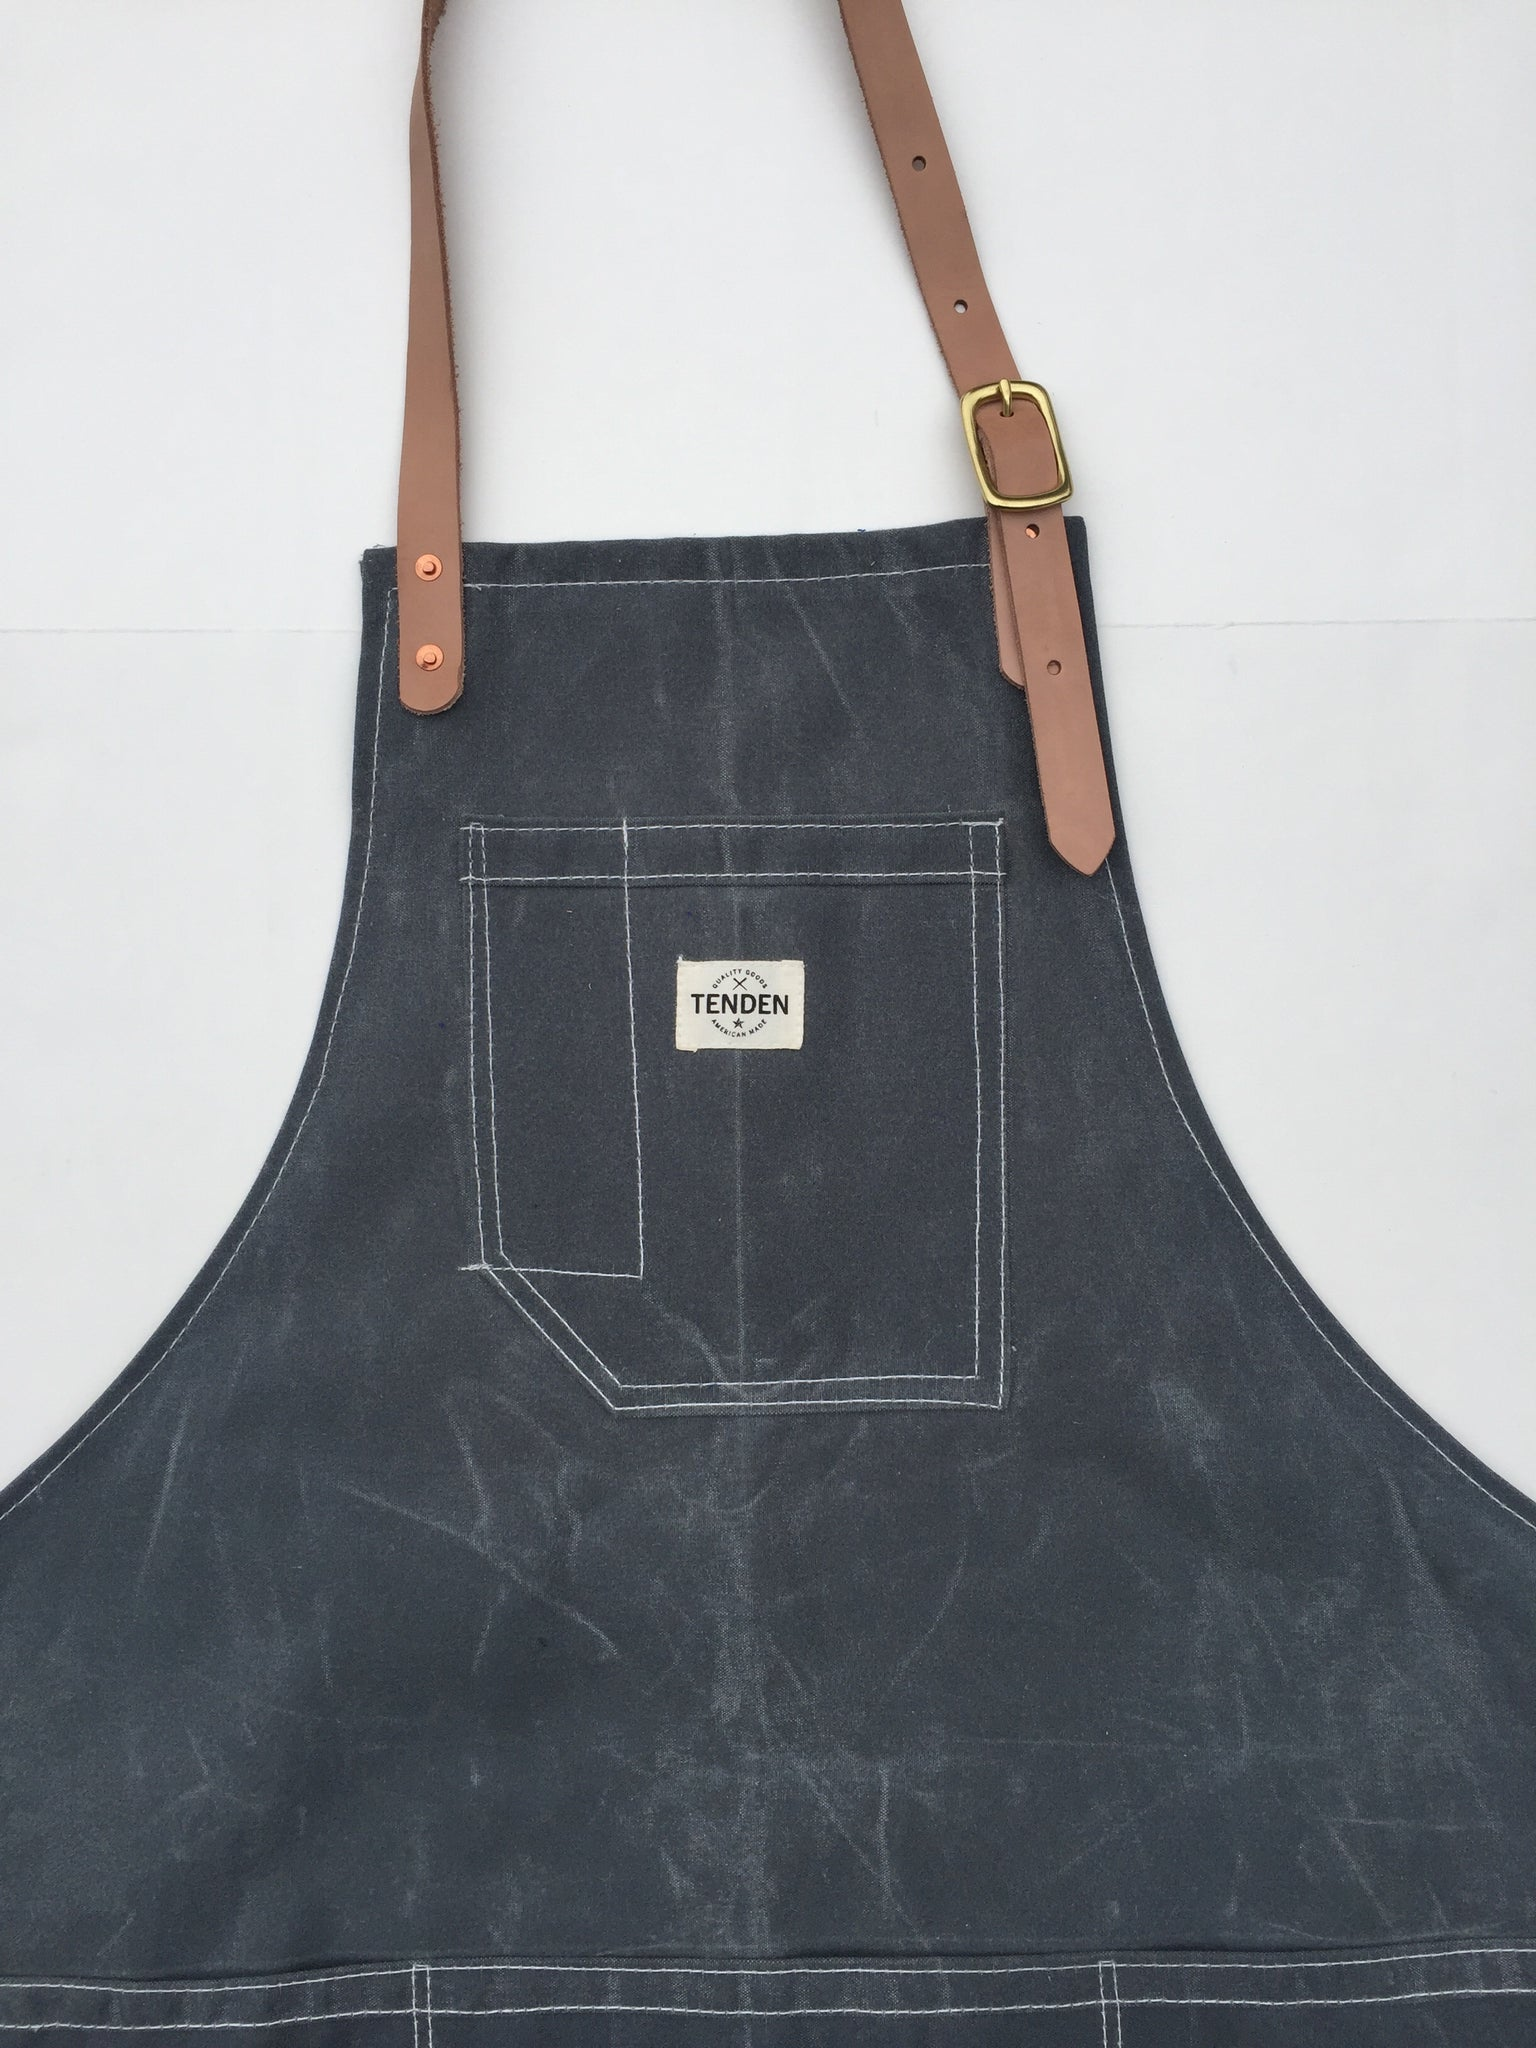 Rust Wax Canvas Apron w Leather Straps Protective Clothing Home ...